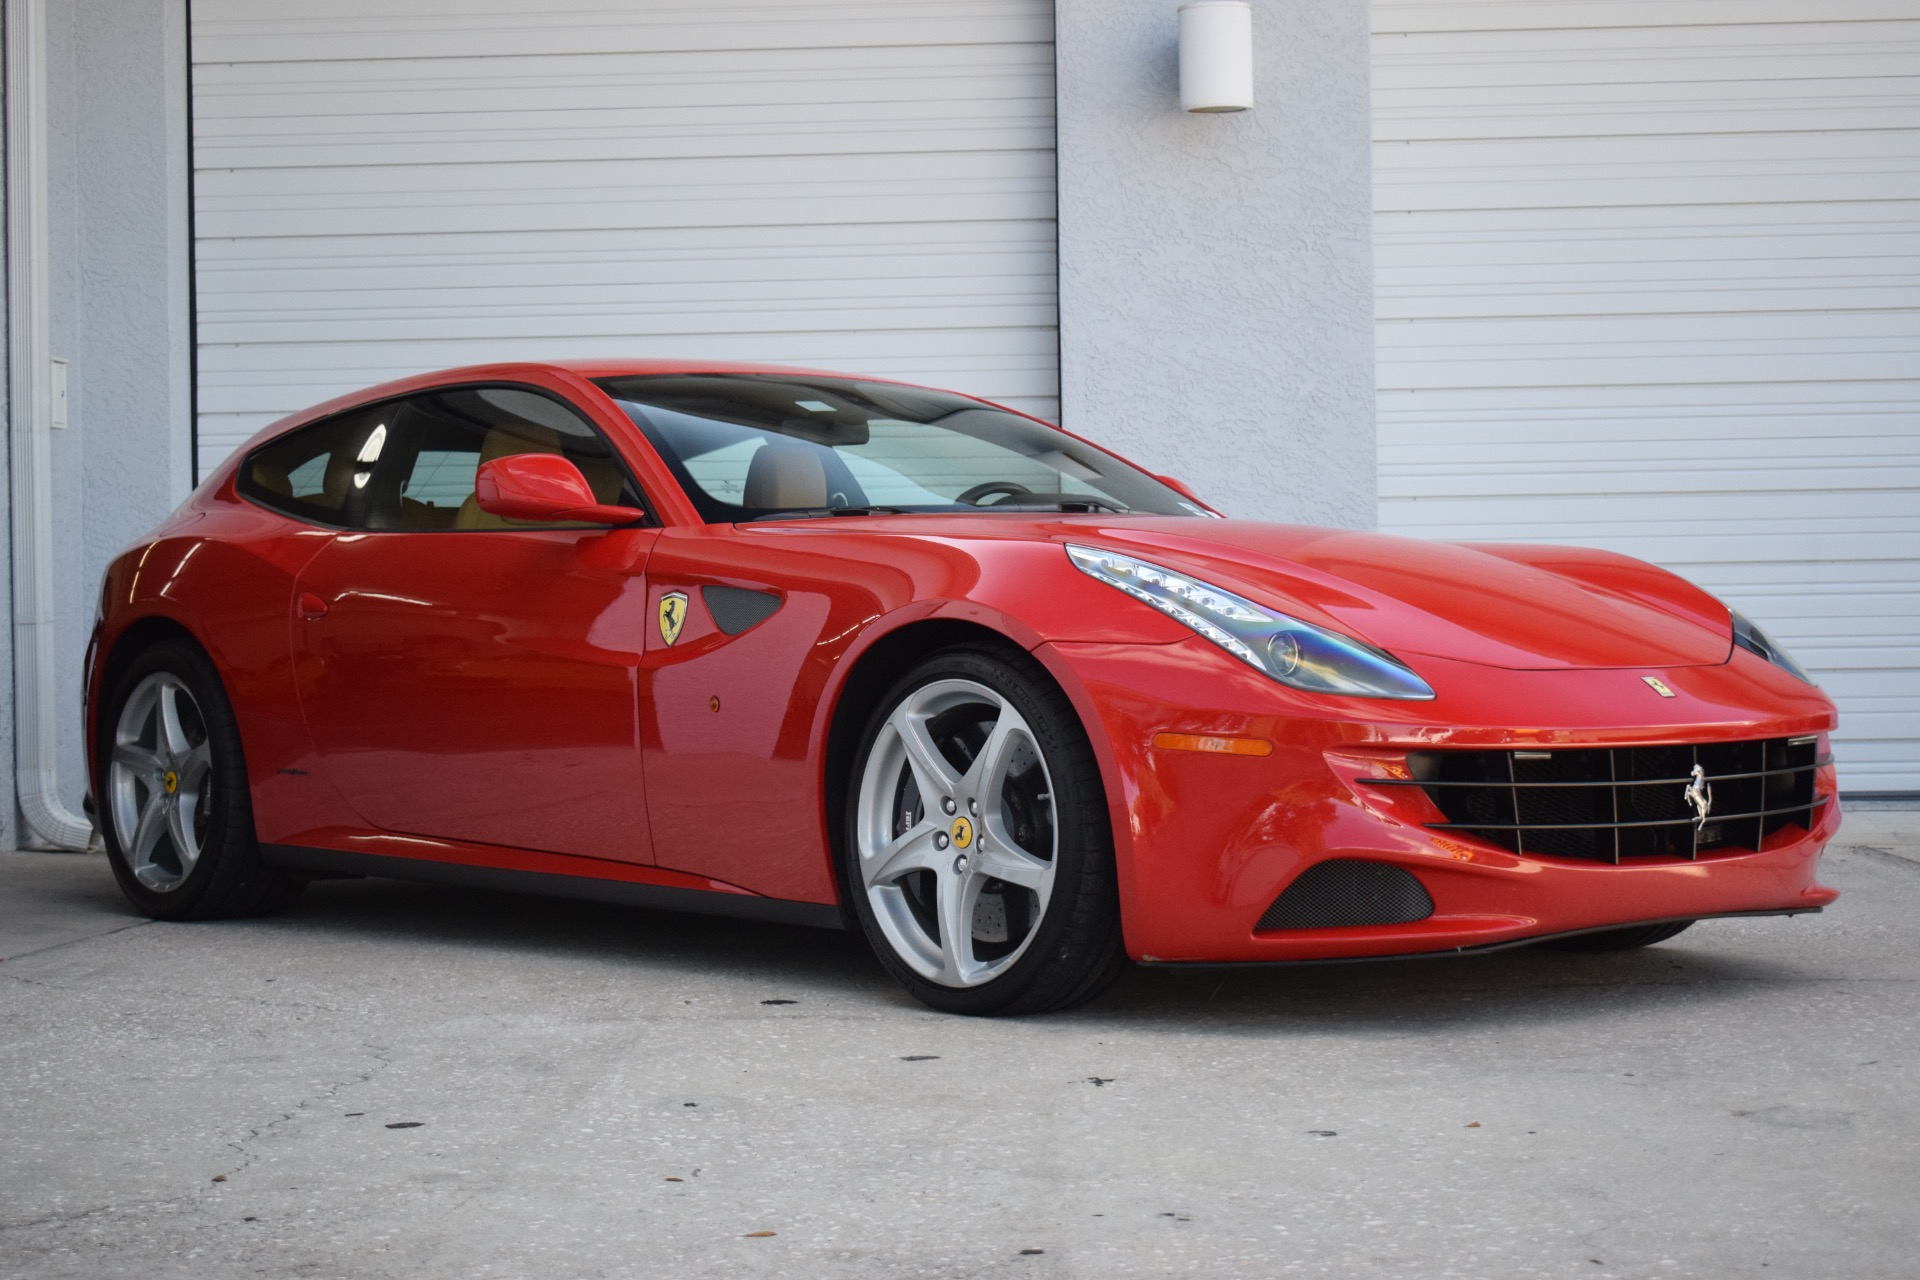 Used 2012 Ferrari FF Coupe 2D for sale $119,997 at Track and Field Motors in Safety Harbor FL 34695 1